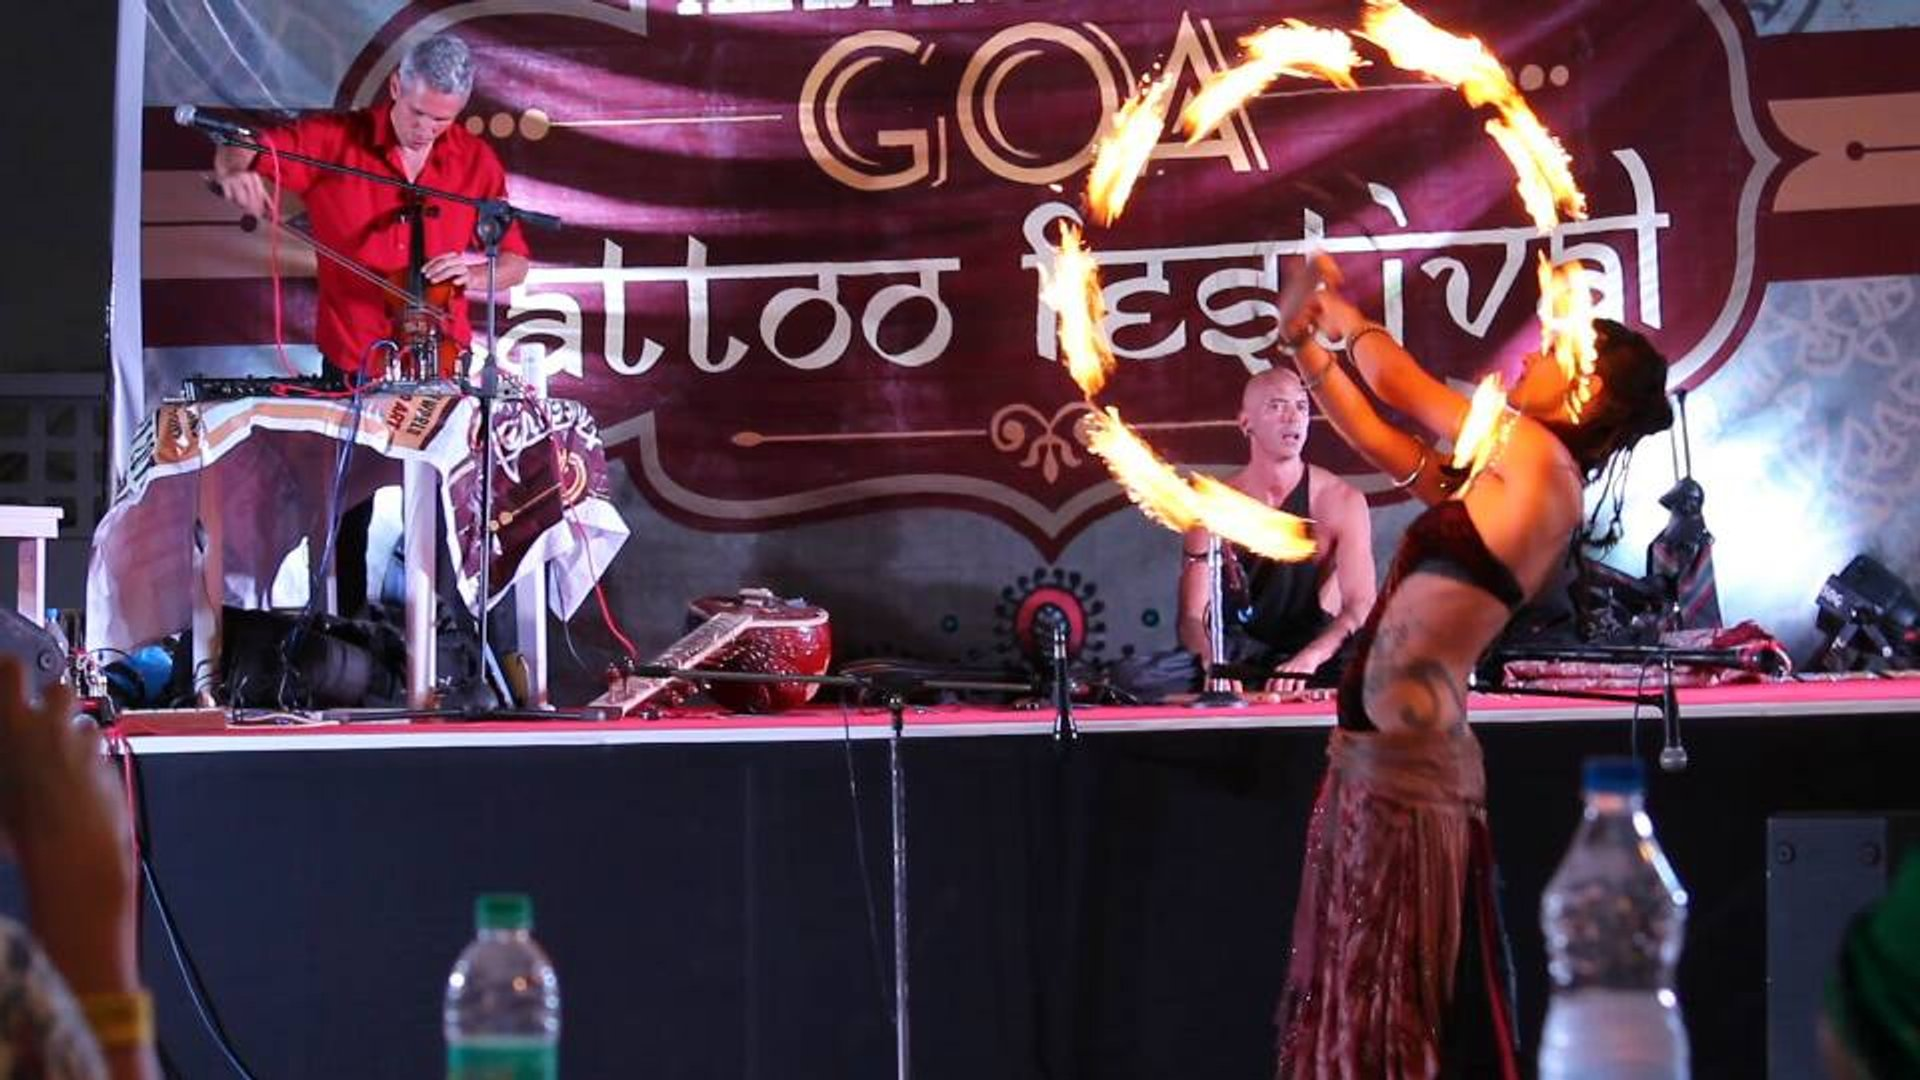 Goa Tattoo Festival in Goa - Best Season 2020